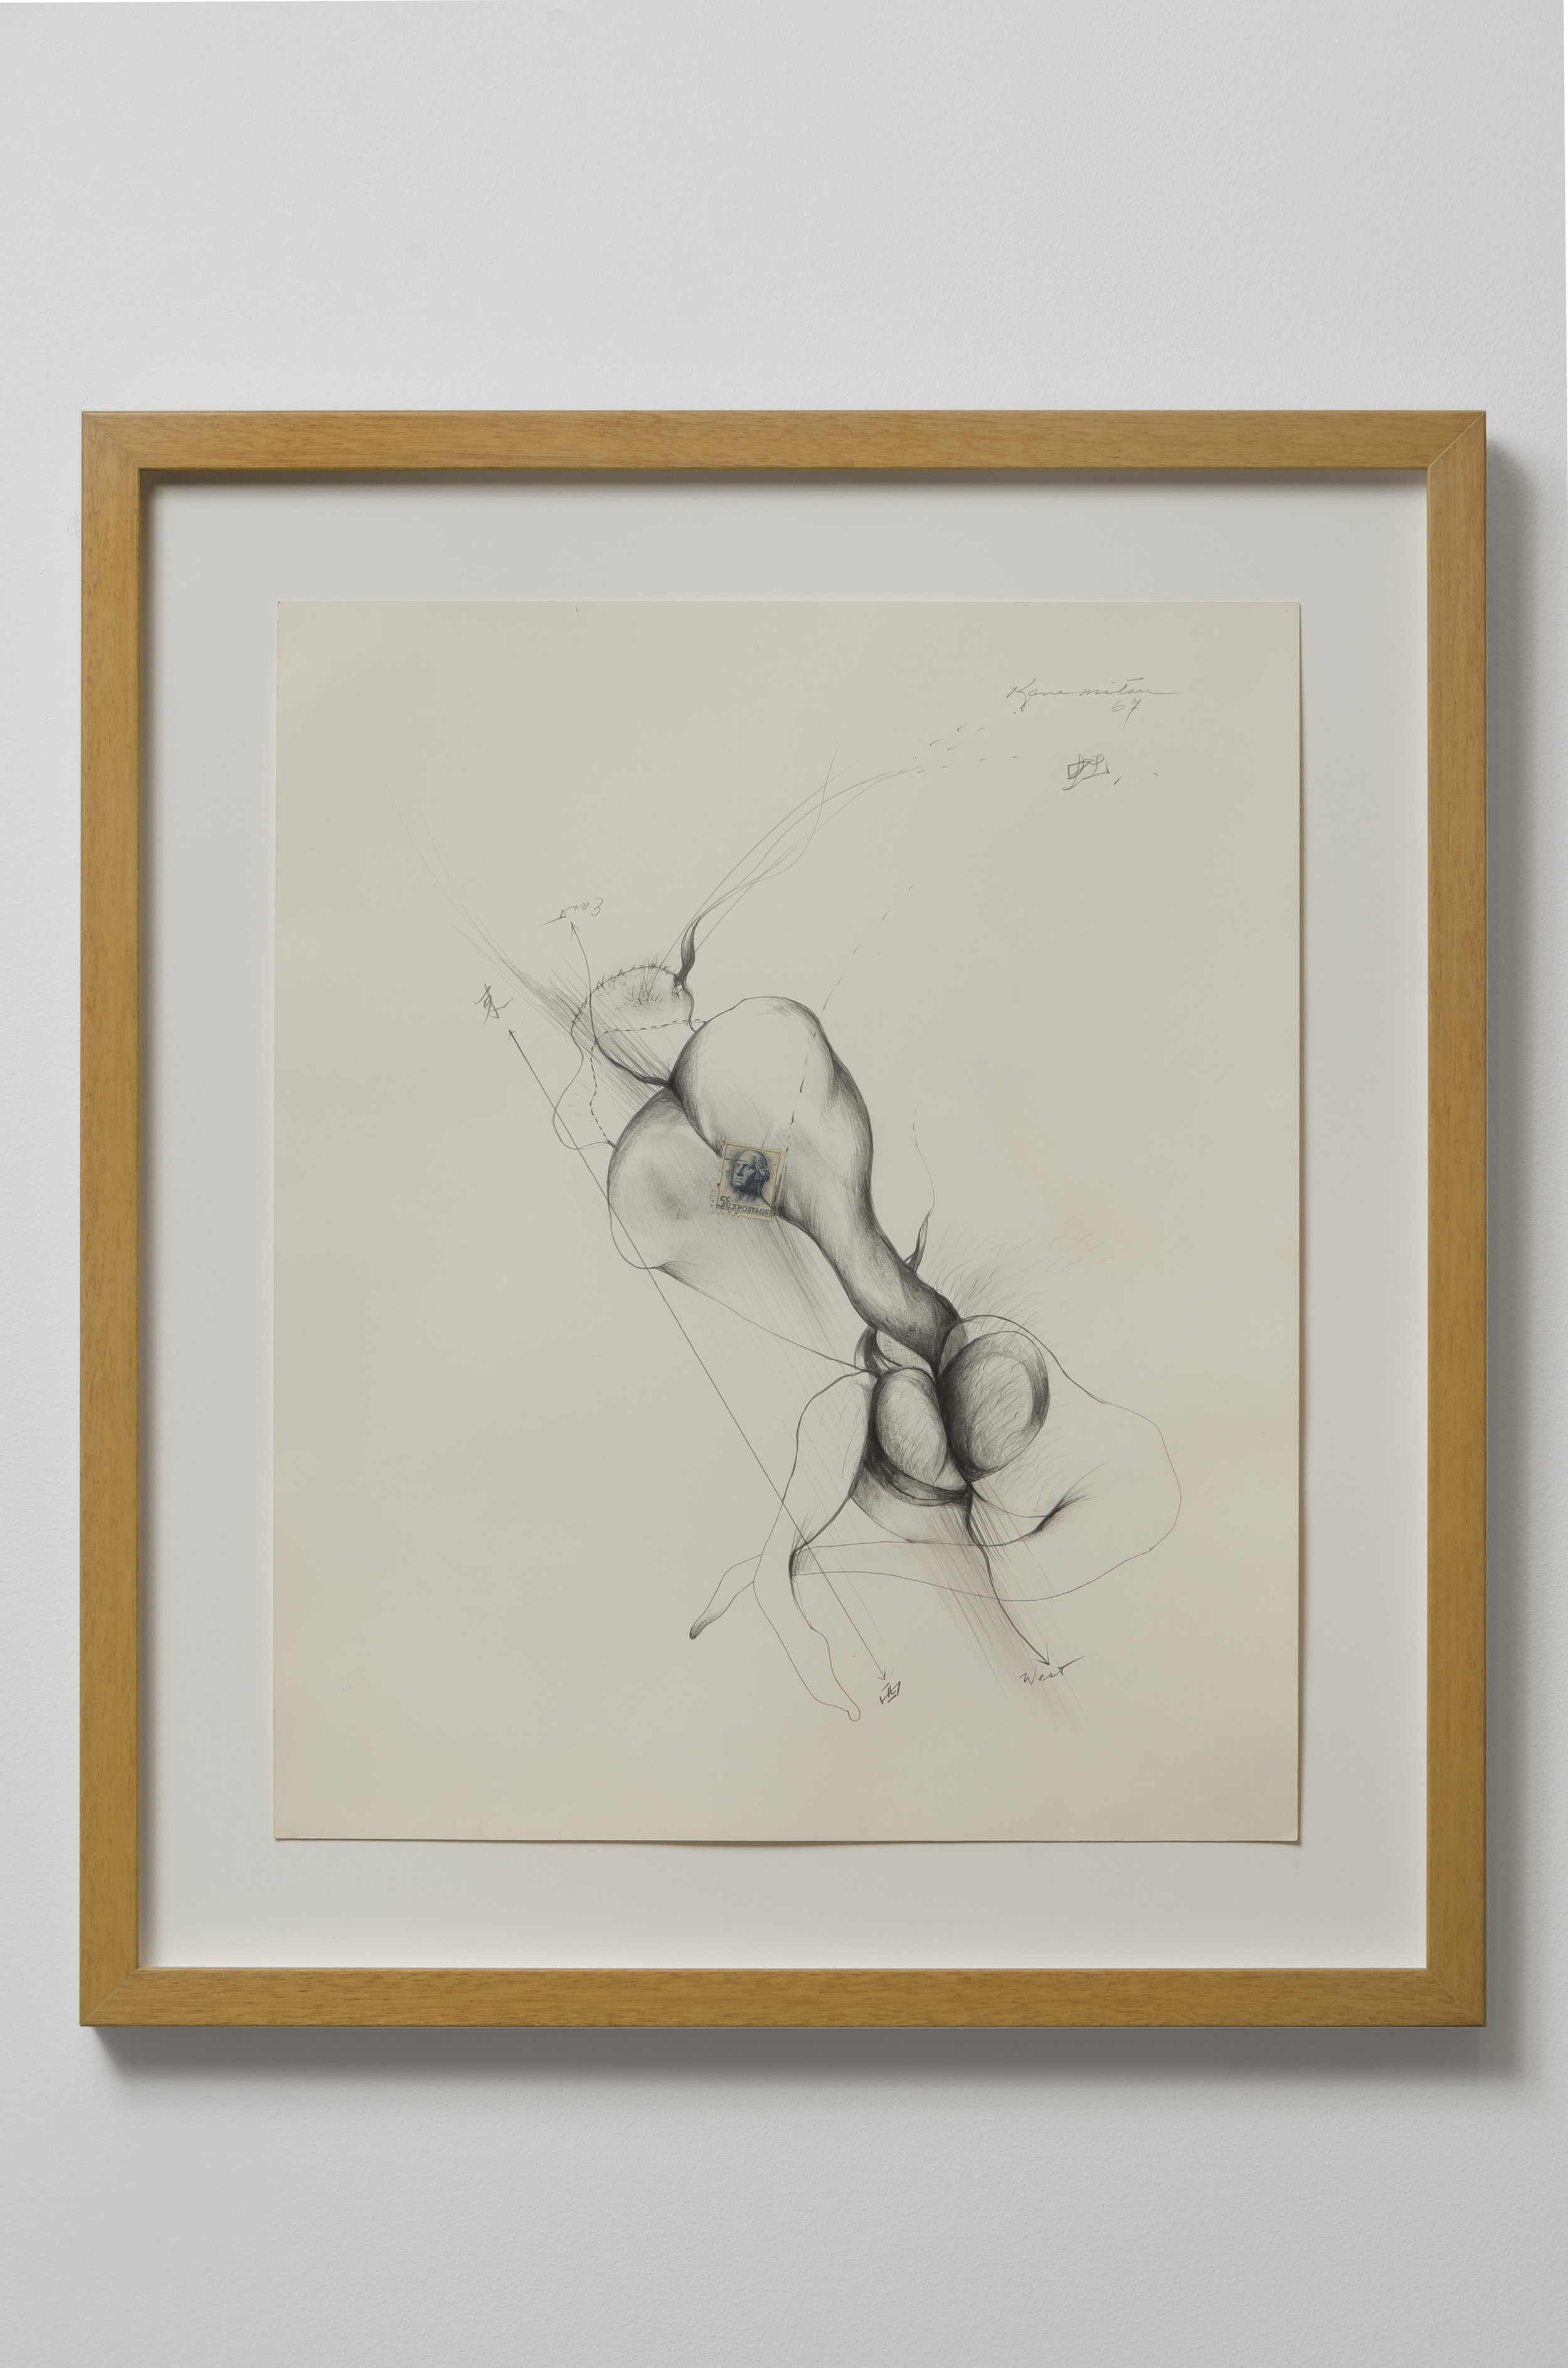 Untitled (East/West)   1967  pencil on paper  17 x 14 inches, 43.2 x 35.6 centimeters